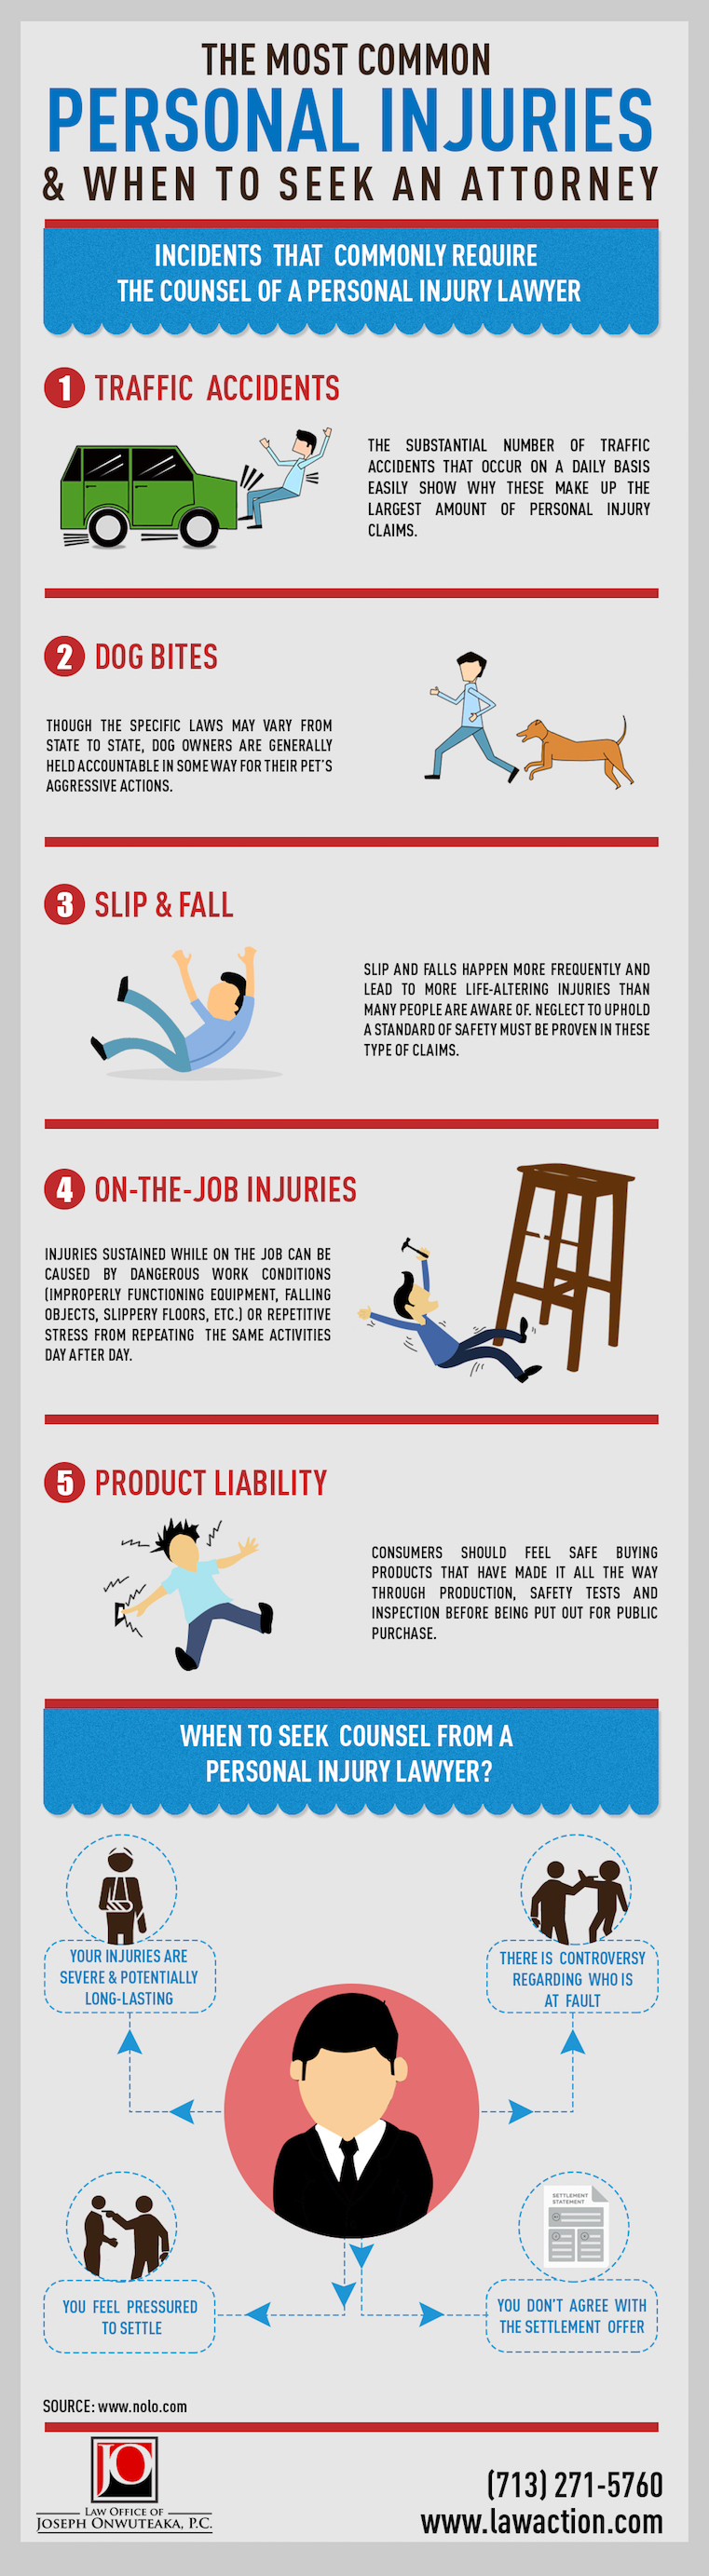 the most common personal injuries